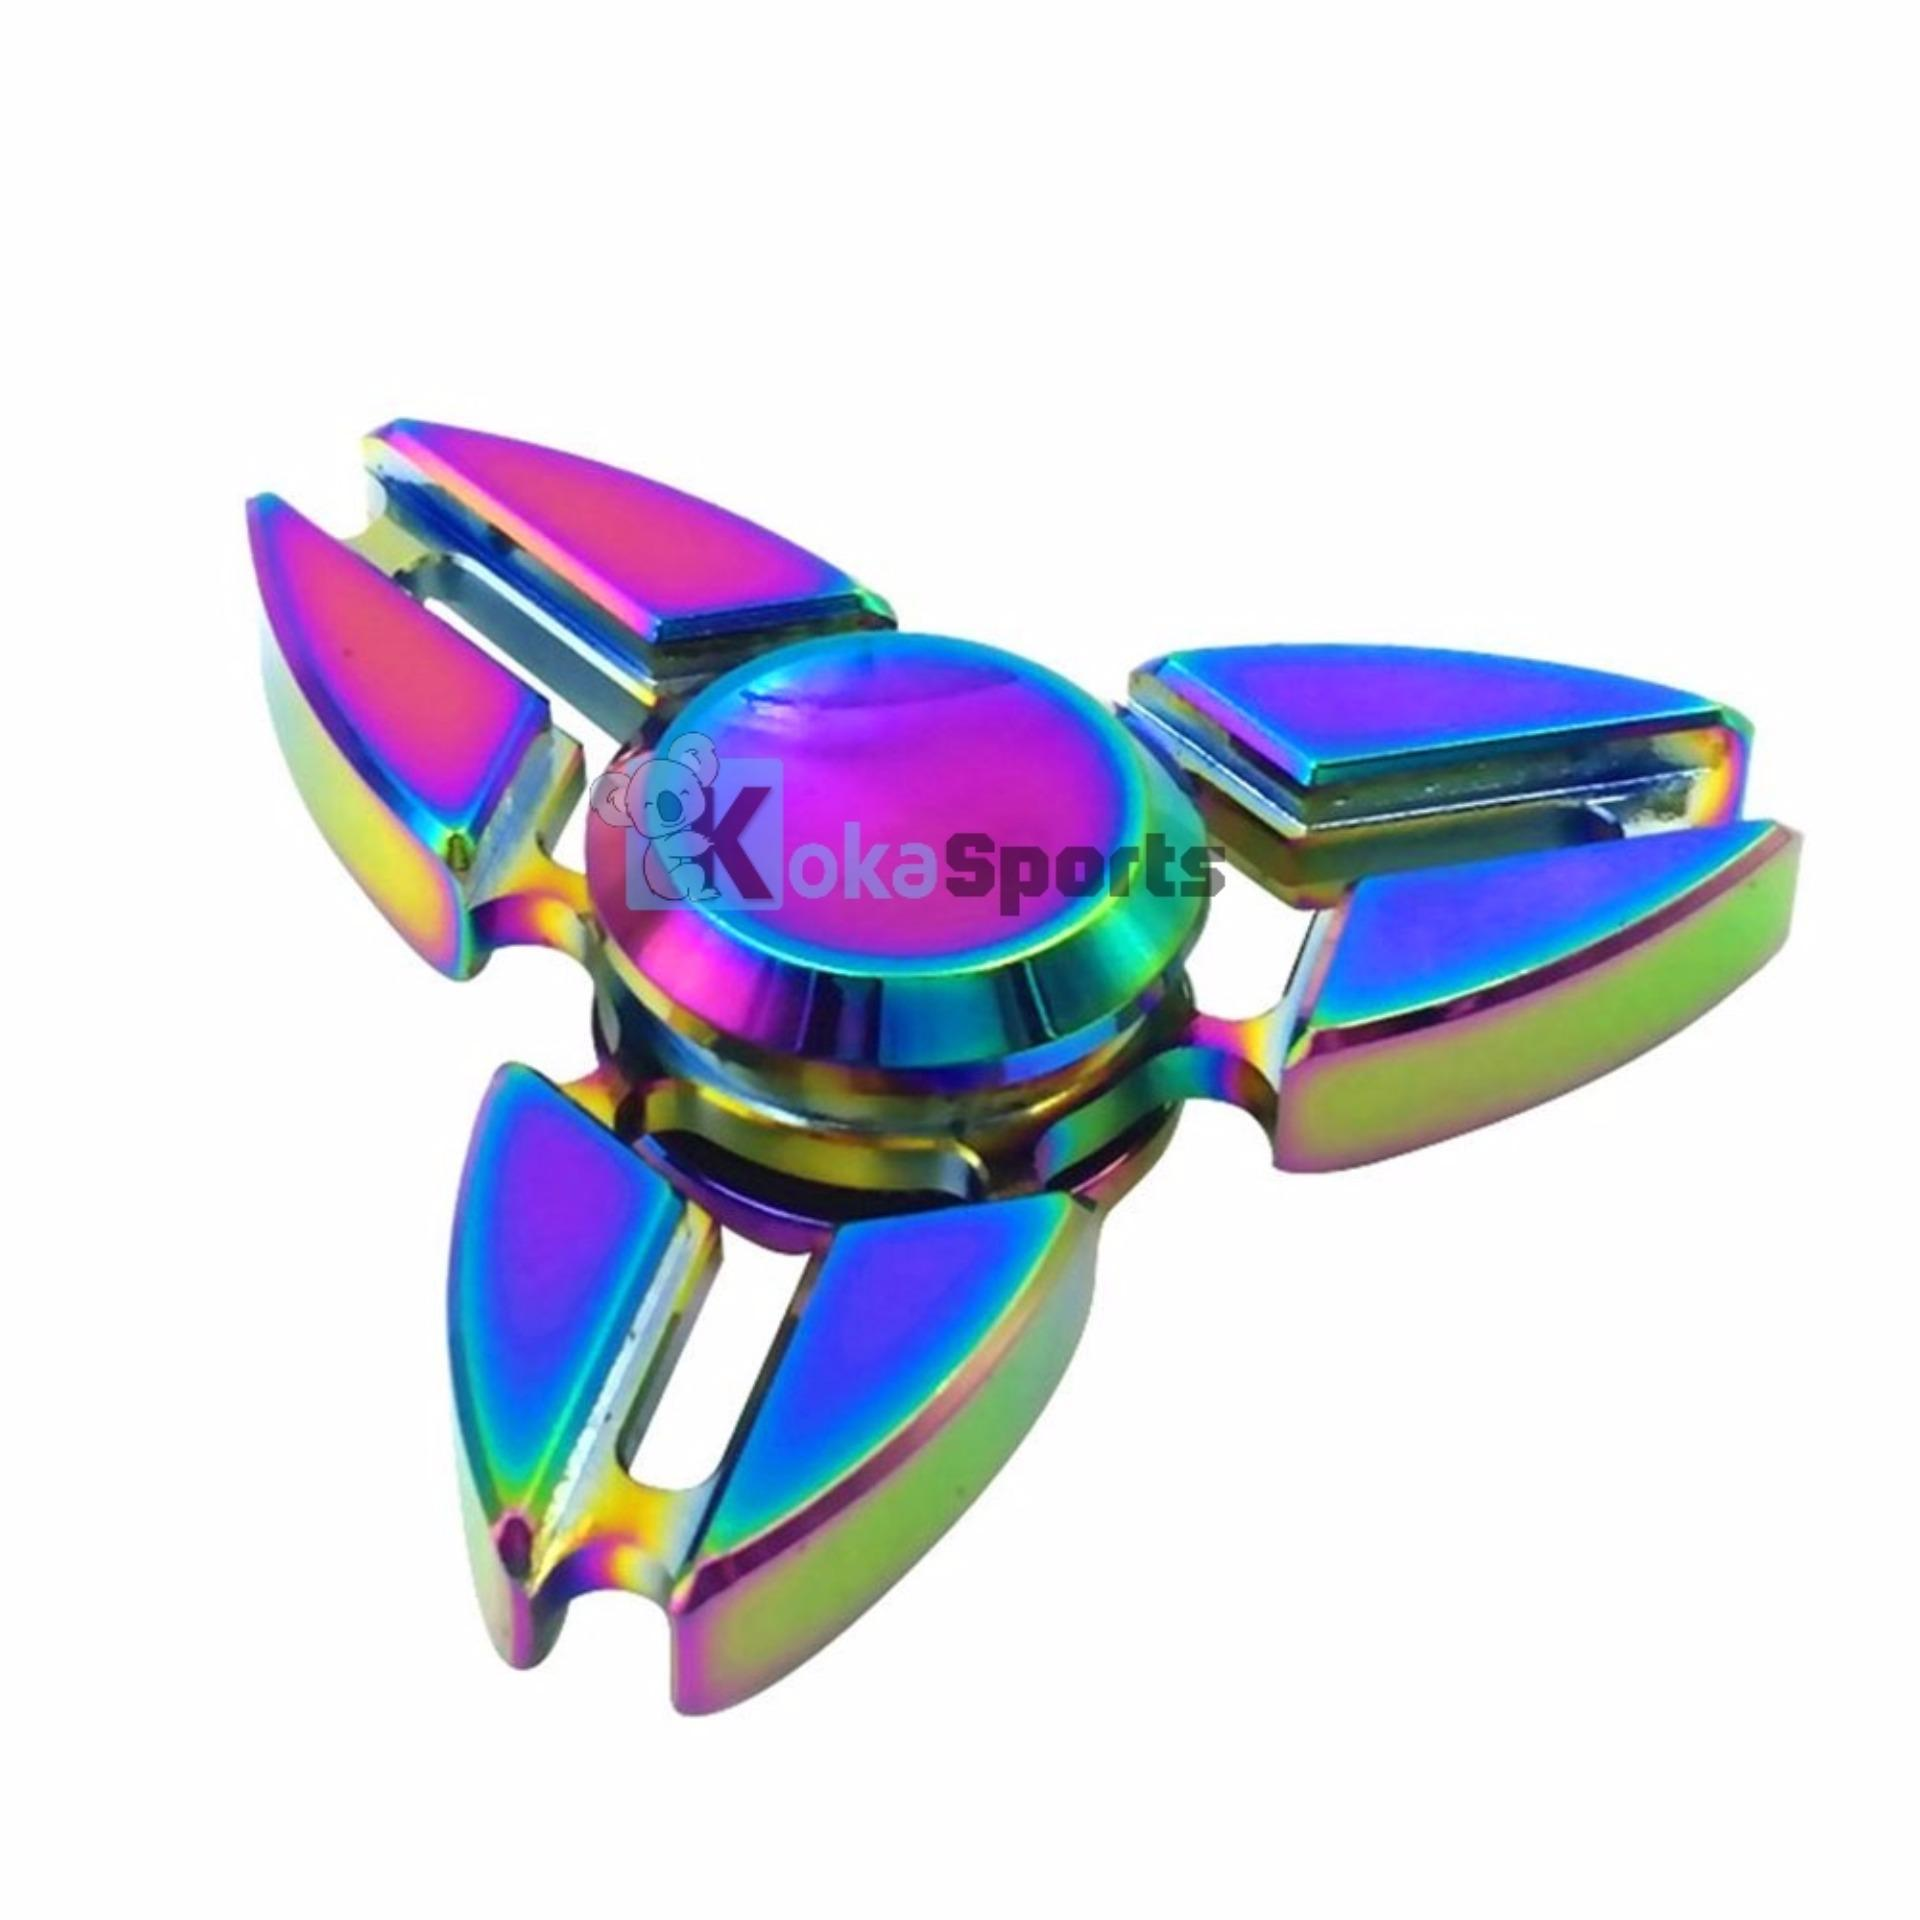 Kokakaa Fidget Hand Spinner Premium Rainbow Chrome Shuriken 3 Bintang Mainan Anti Stress .